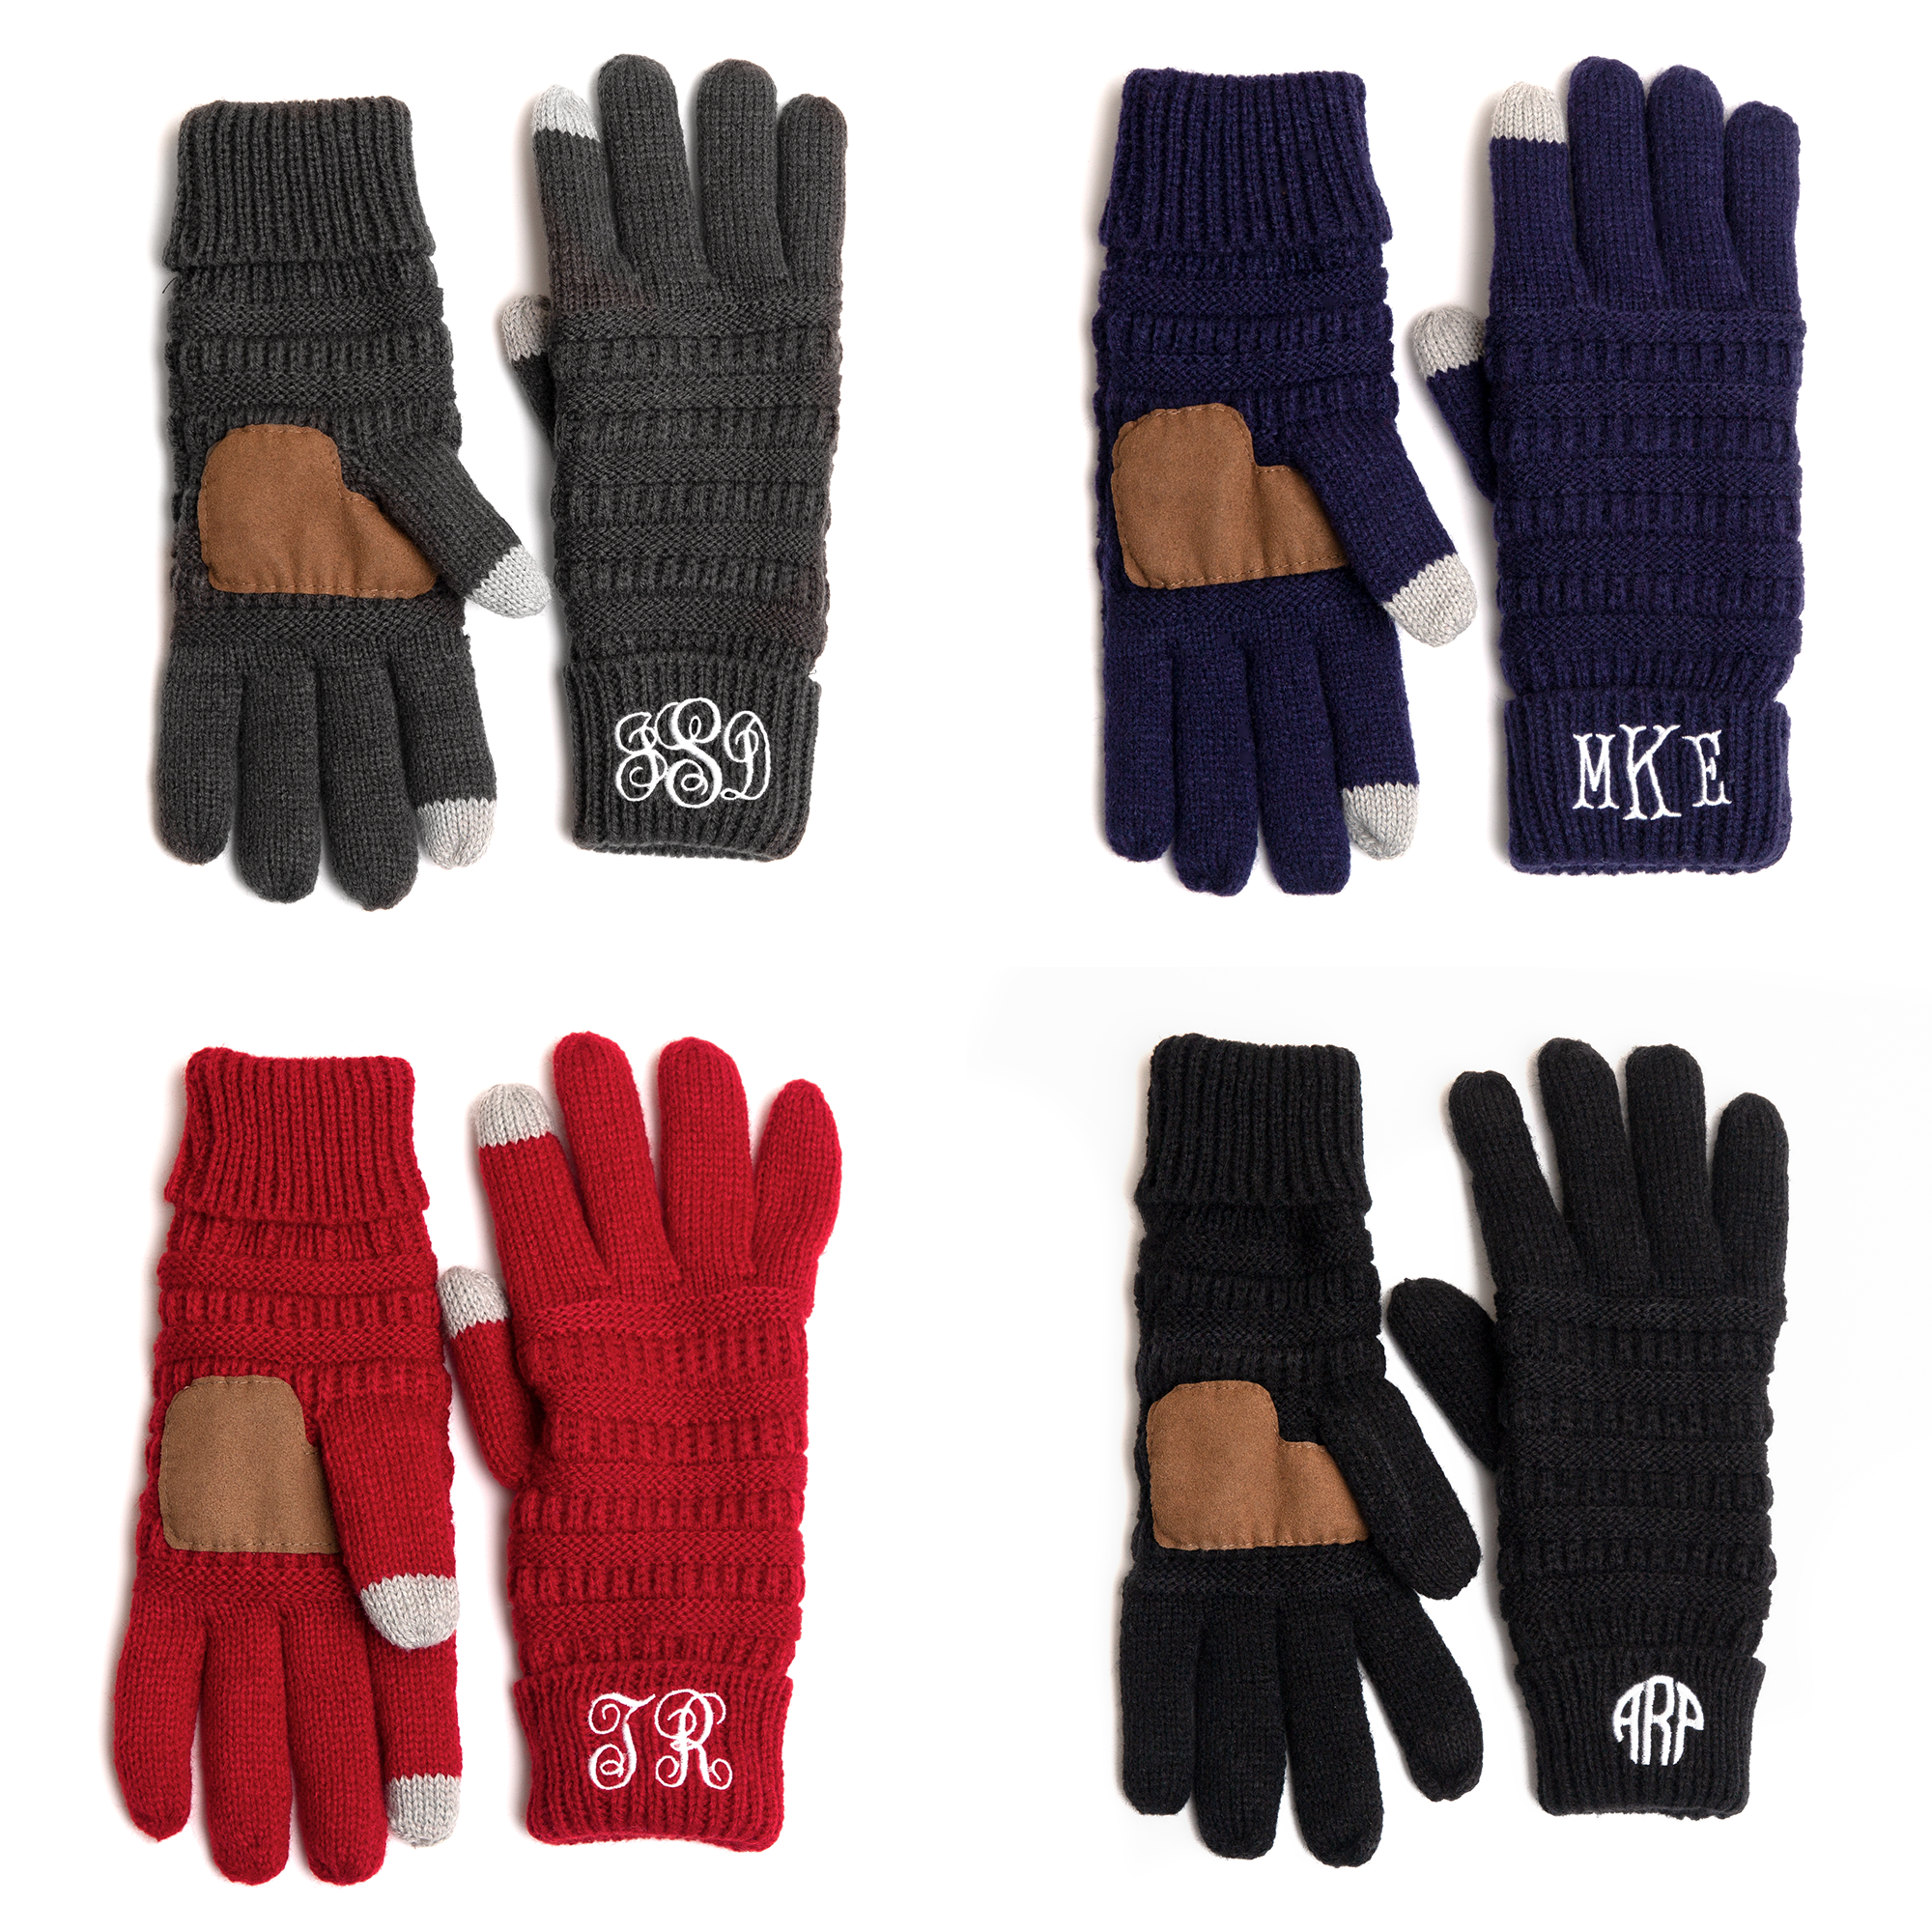 Monogrammed hand gloves with Touchscreen Thumb and Index Finger Tips